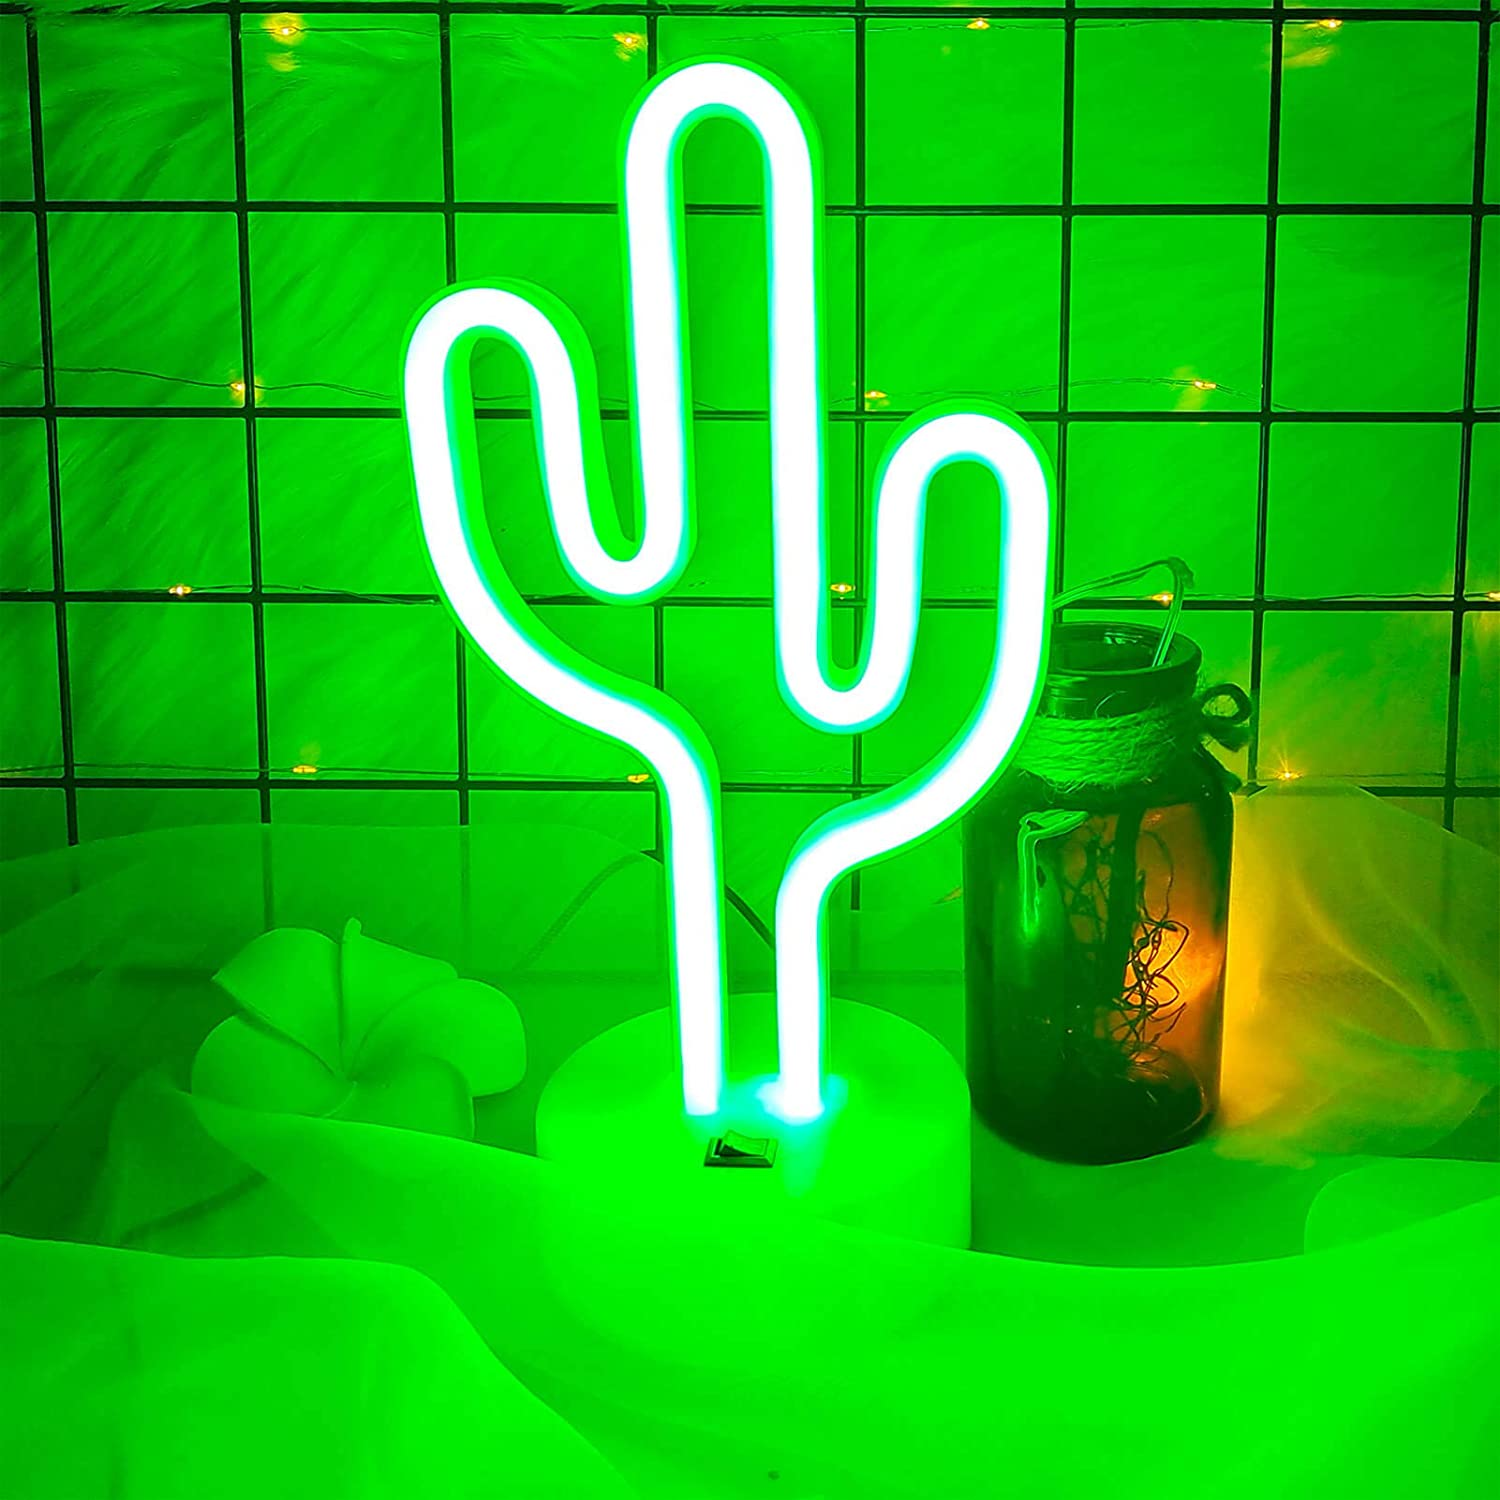 VIFULIN Cactus Neon Signs for Wall Decor LED Lights for Bedroom Decor for Teen Girls Gifts for Teenage Boys Aesthetic Room Decor for Teen Girls USB/Battery LED Night Light with Holder Cool Gadgets